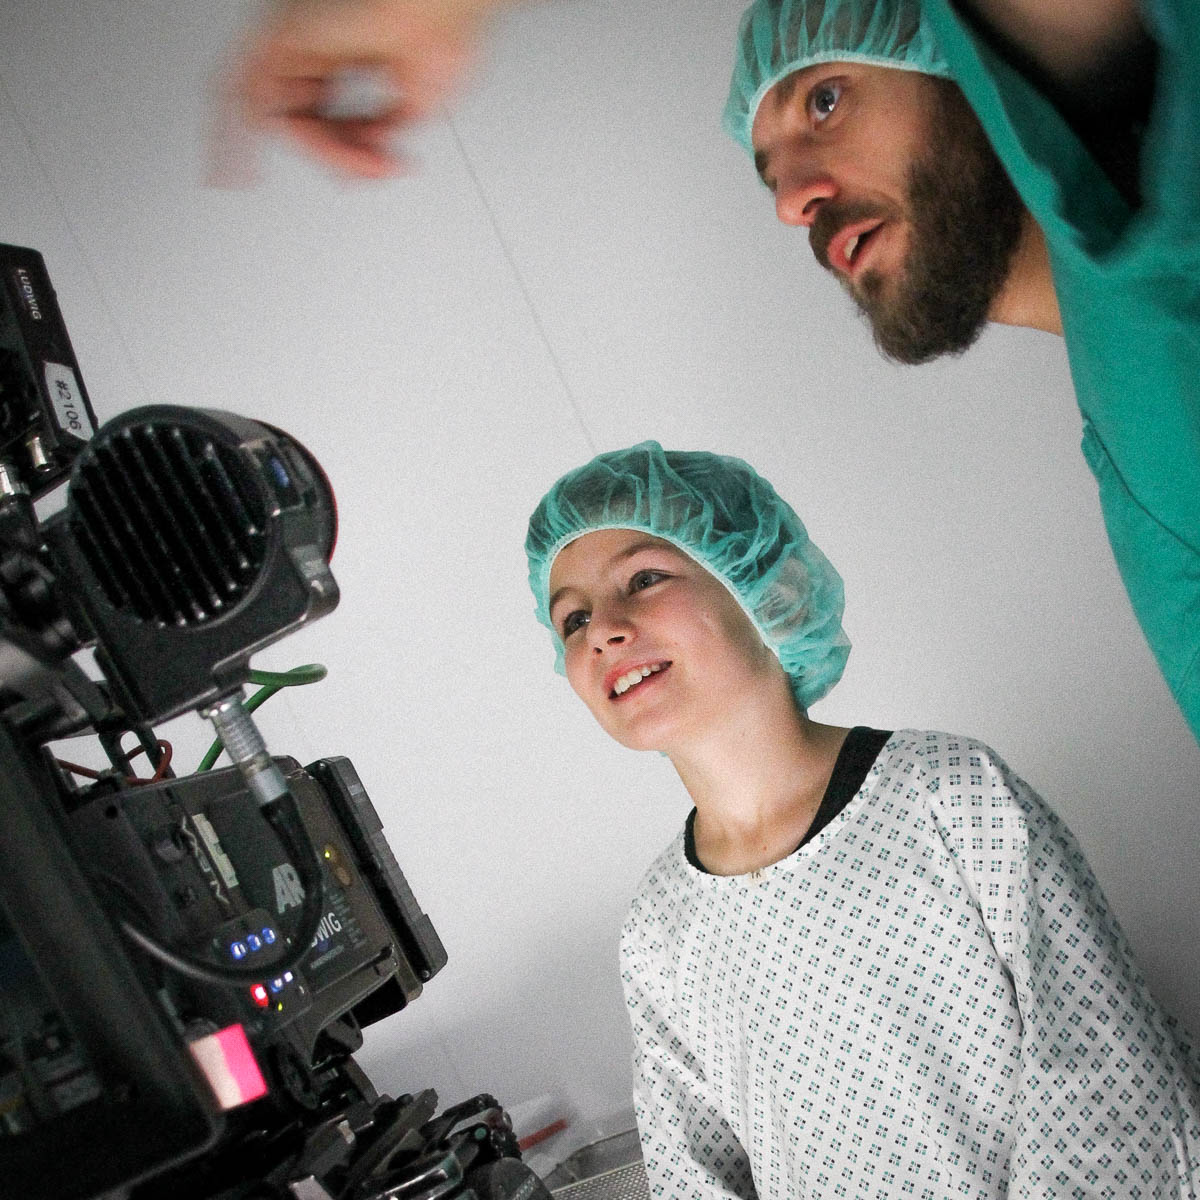 Protagonist and director in scrubs image film St. Hedwig